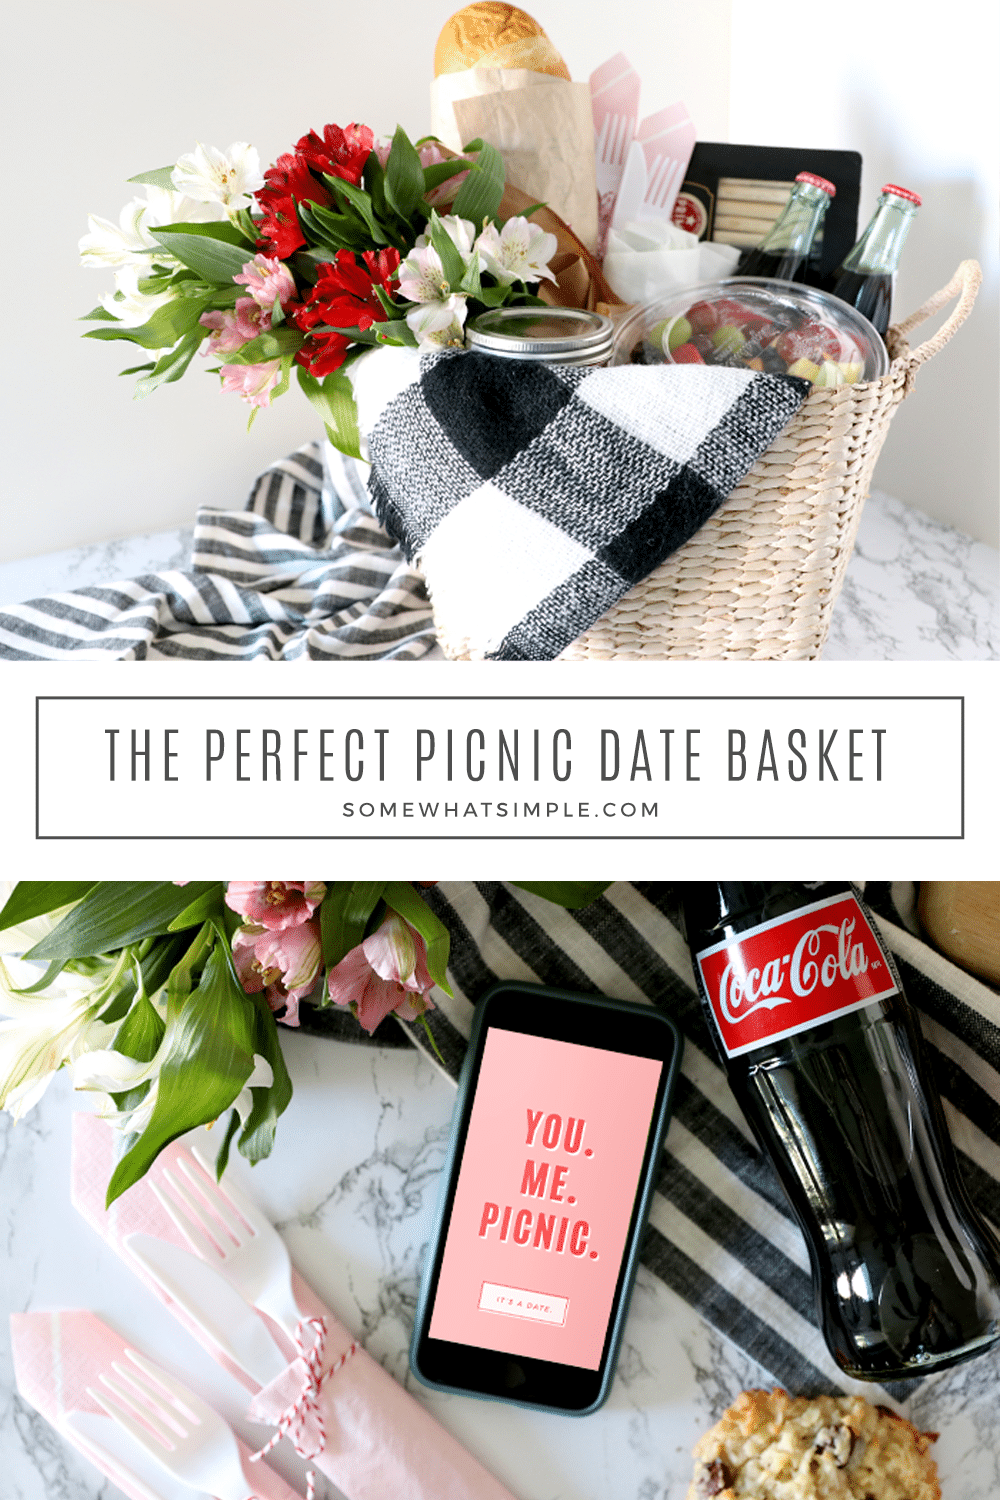 Going on a picnic date is a fun way to celebrate Valentine's Day with your sweetheart. Here's how to make the day absolutely perfect! via @somewhatsimple